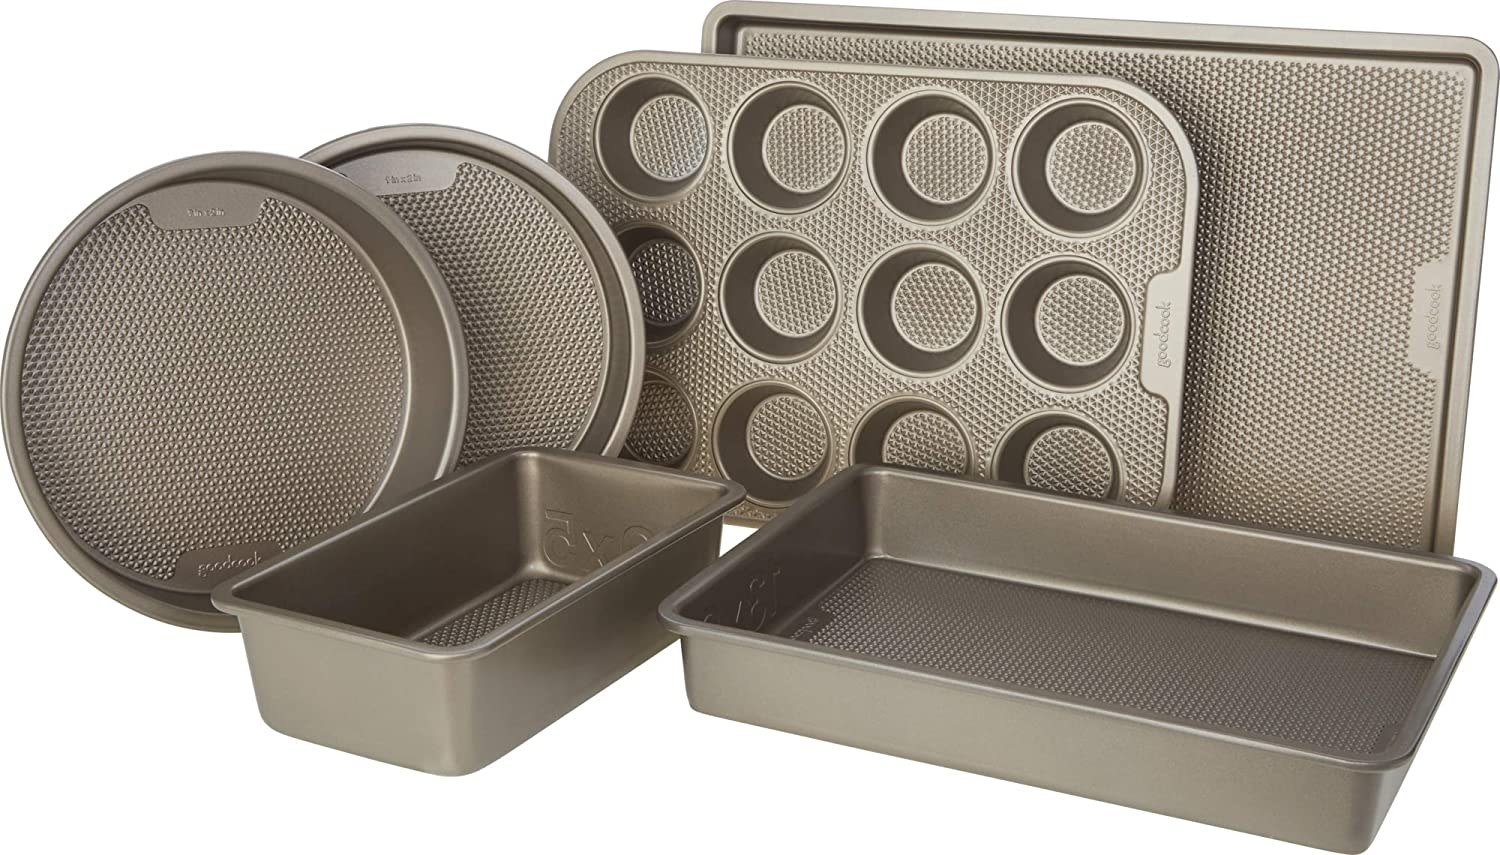 Two round cake pans, a cookie sheet, a muffin tin, a loaf pan, and a rectangular cake pan